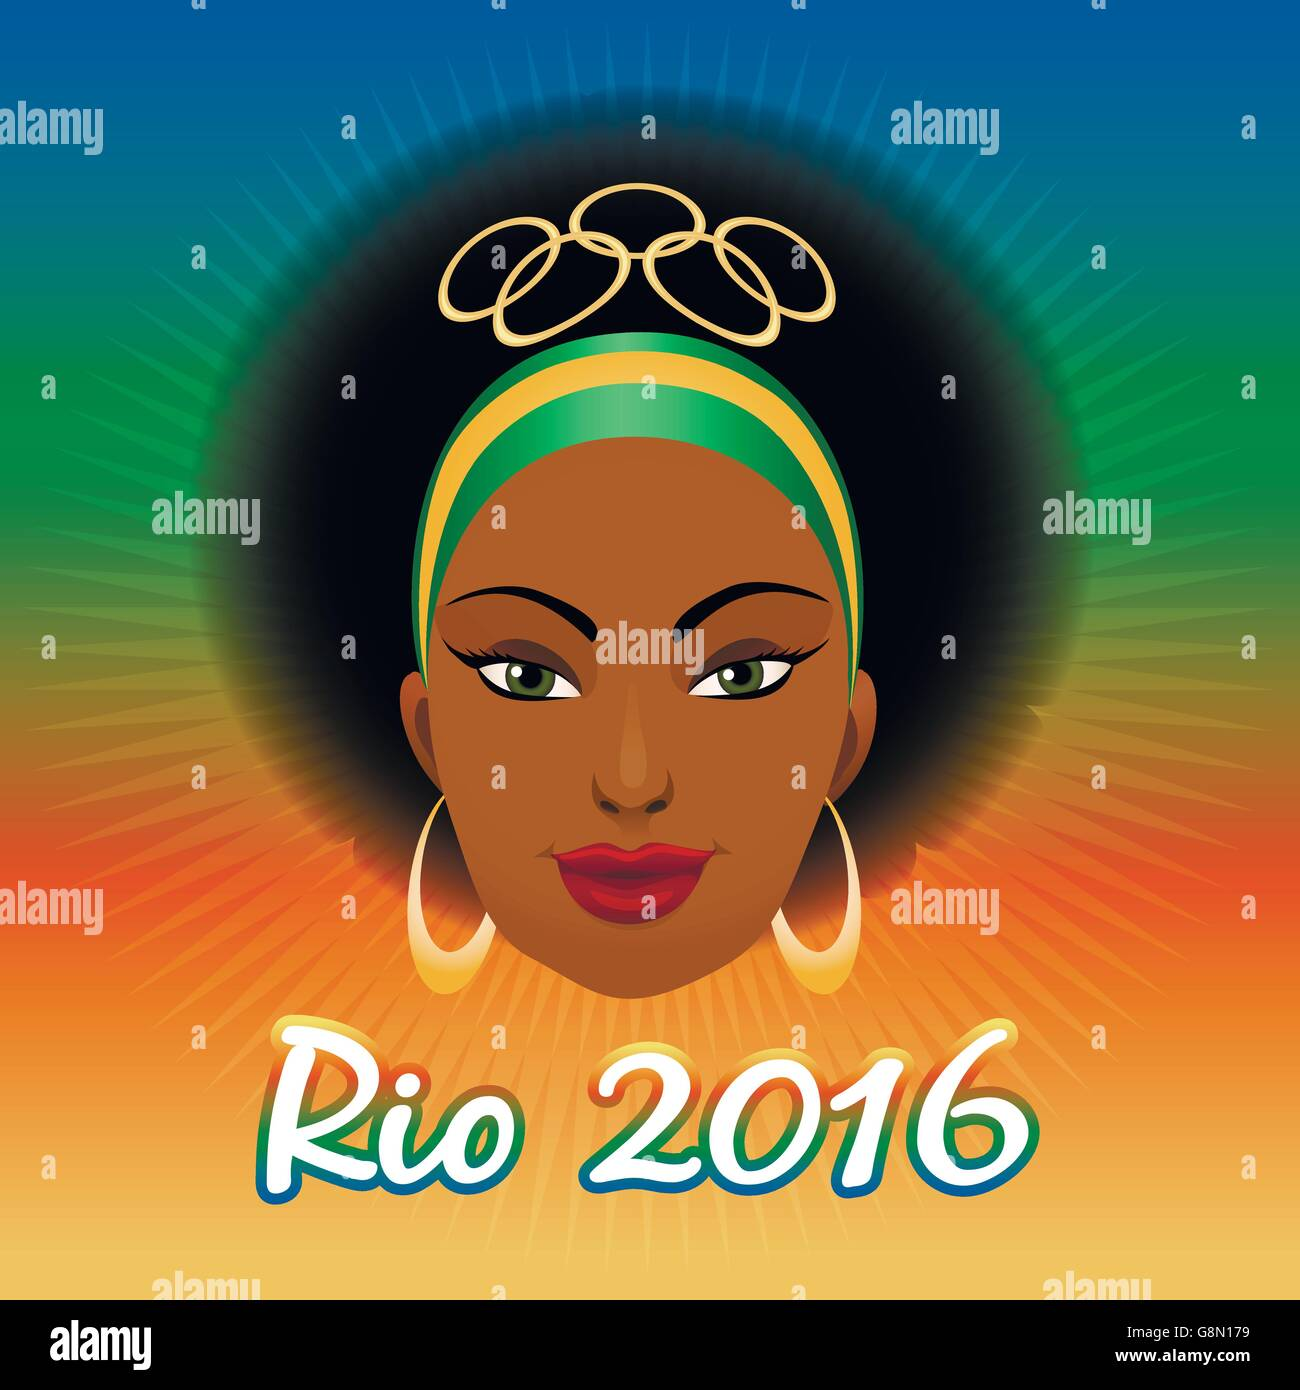 Rio Olympic Games Emblem with woman face against colorful festive background. Stock Vector